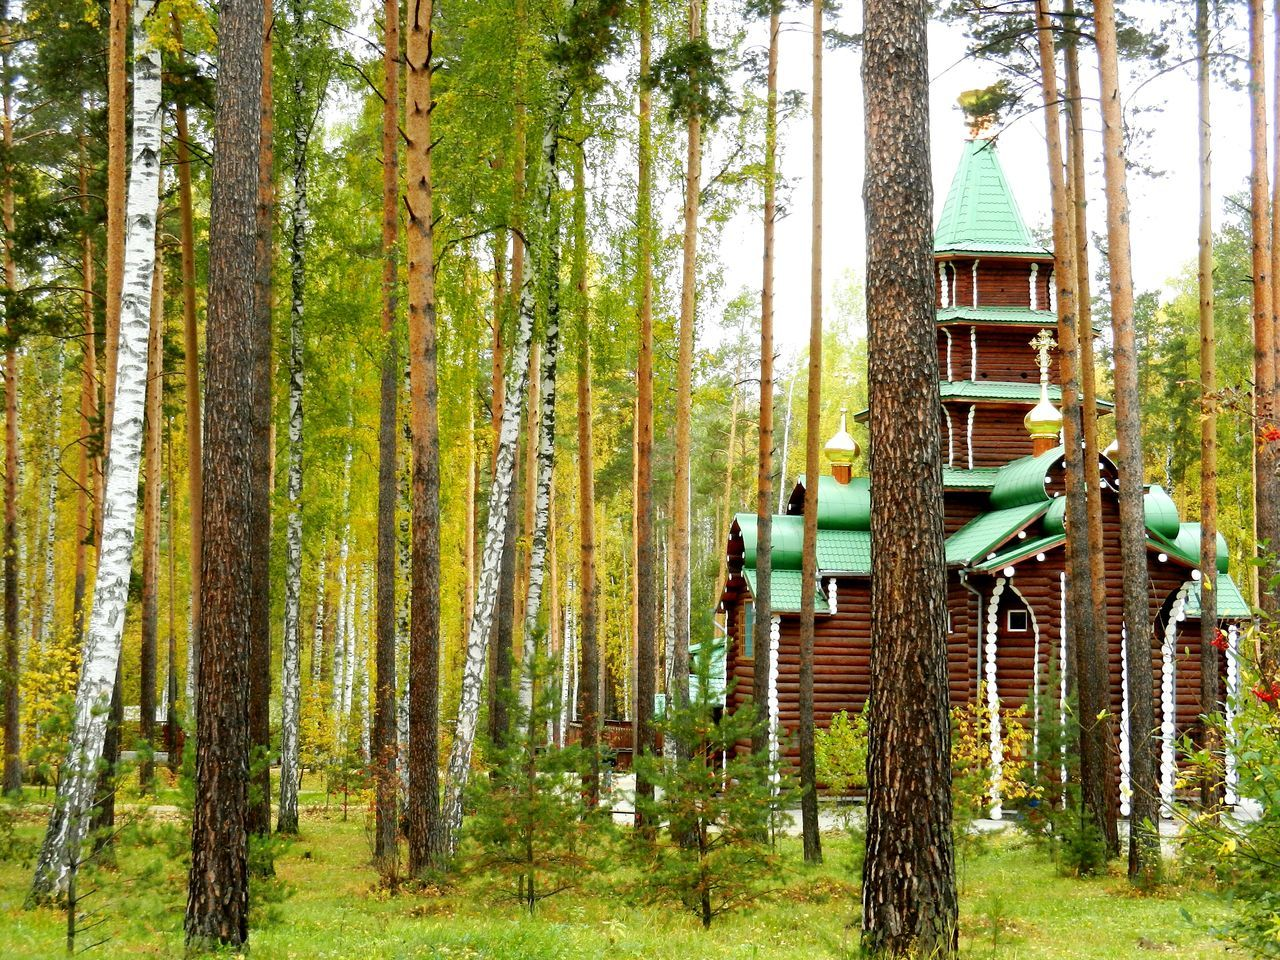 Tree Tree Trunk Growth WoodLand Branch Nature Tranquility Tranquil Scene Outdoors Day Scenics Beauty In Nature Green Color No People Tall Russian Nature Traveling y Yekaterinburg Monastery Linden Tree Religion God Spirituality Wooden Architecture